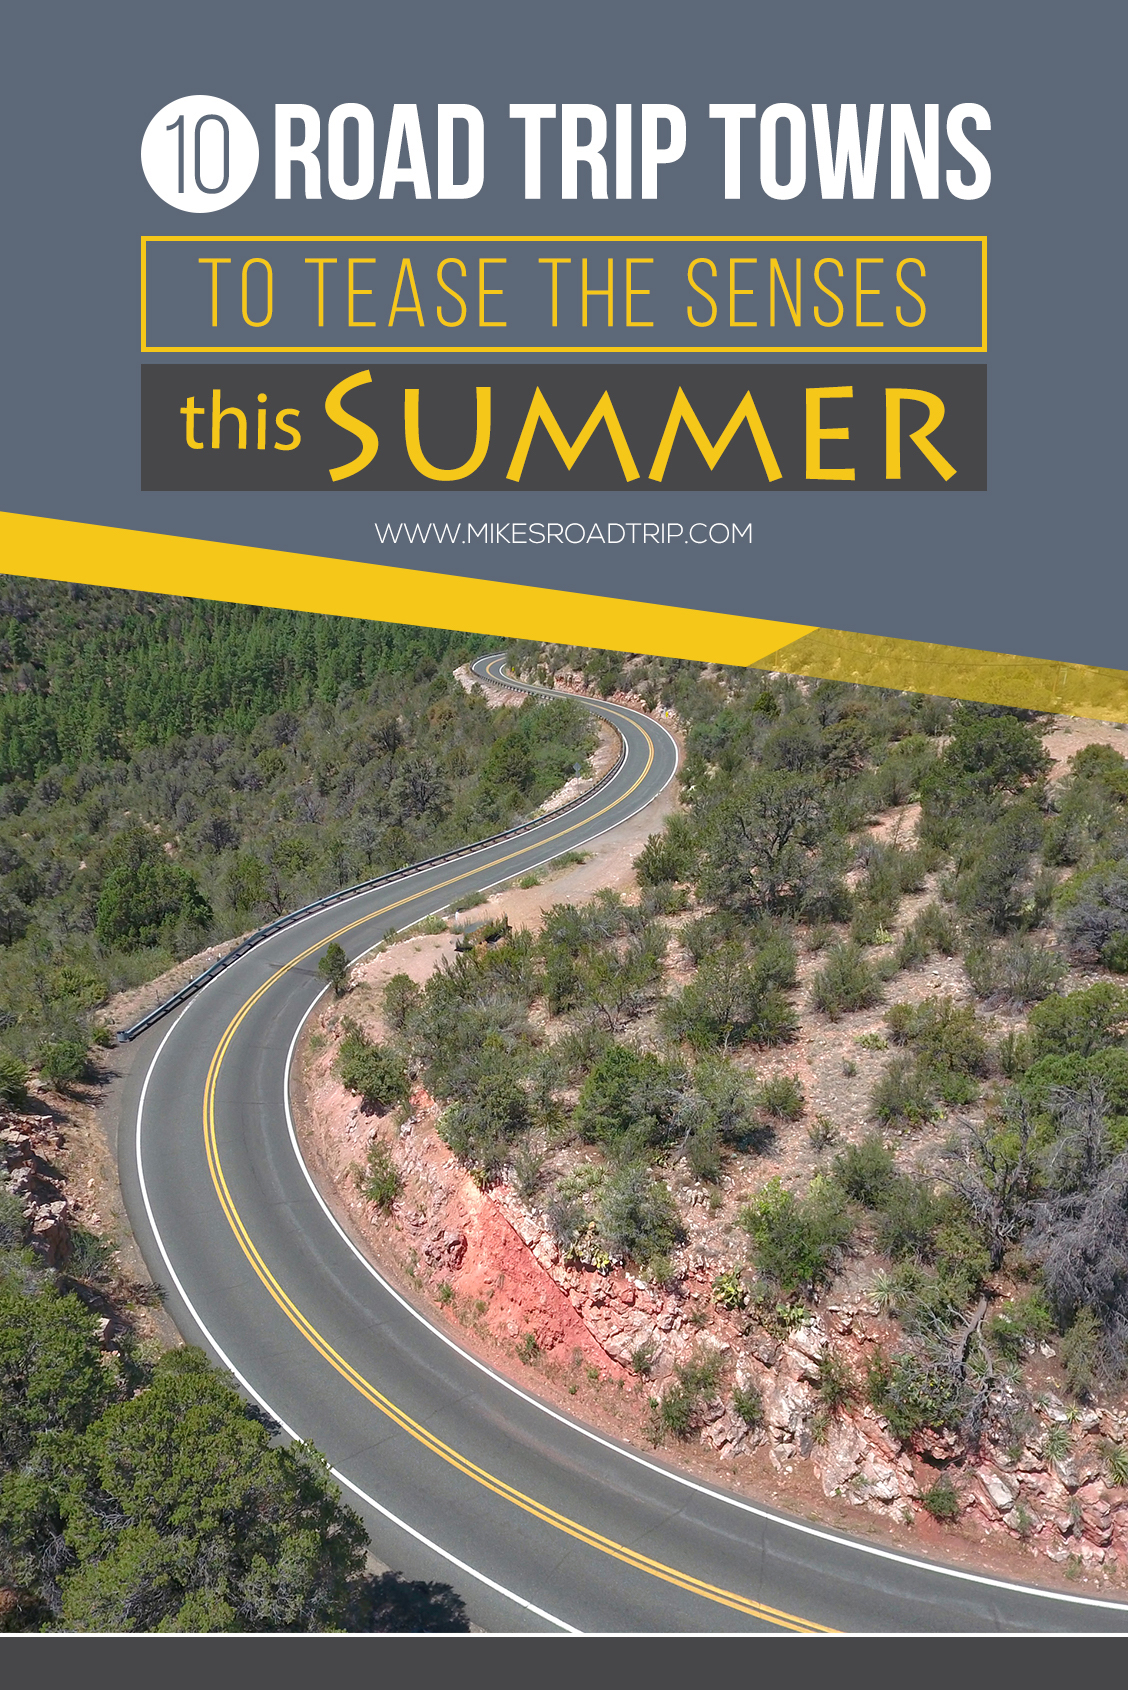 10 Road Trip Towns to teast the senses this summer by MikesRoadTrip.com